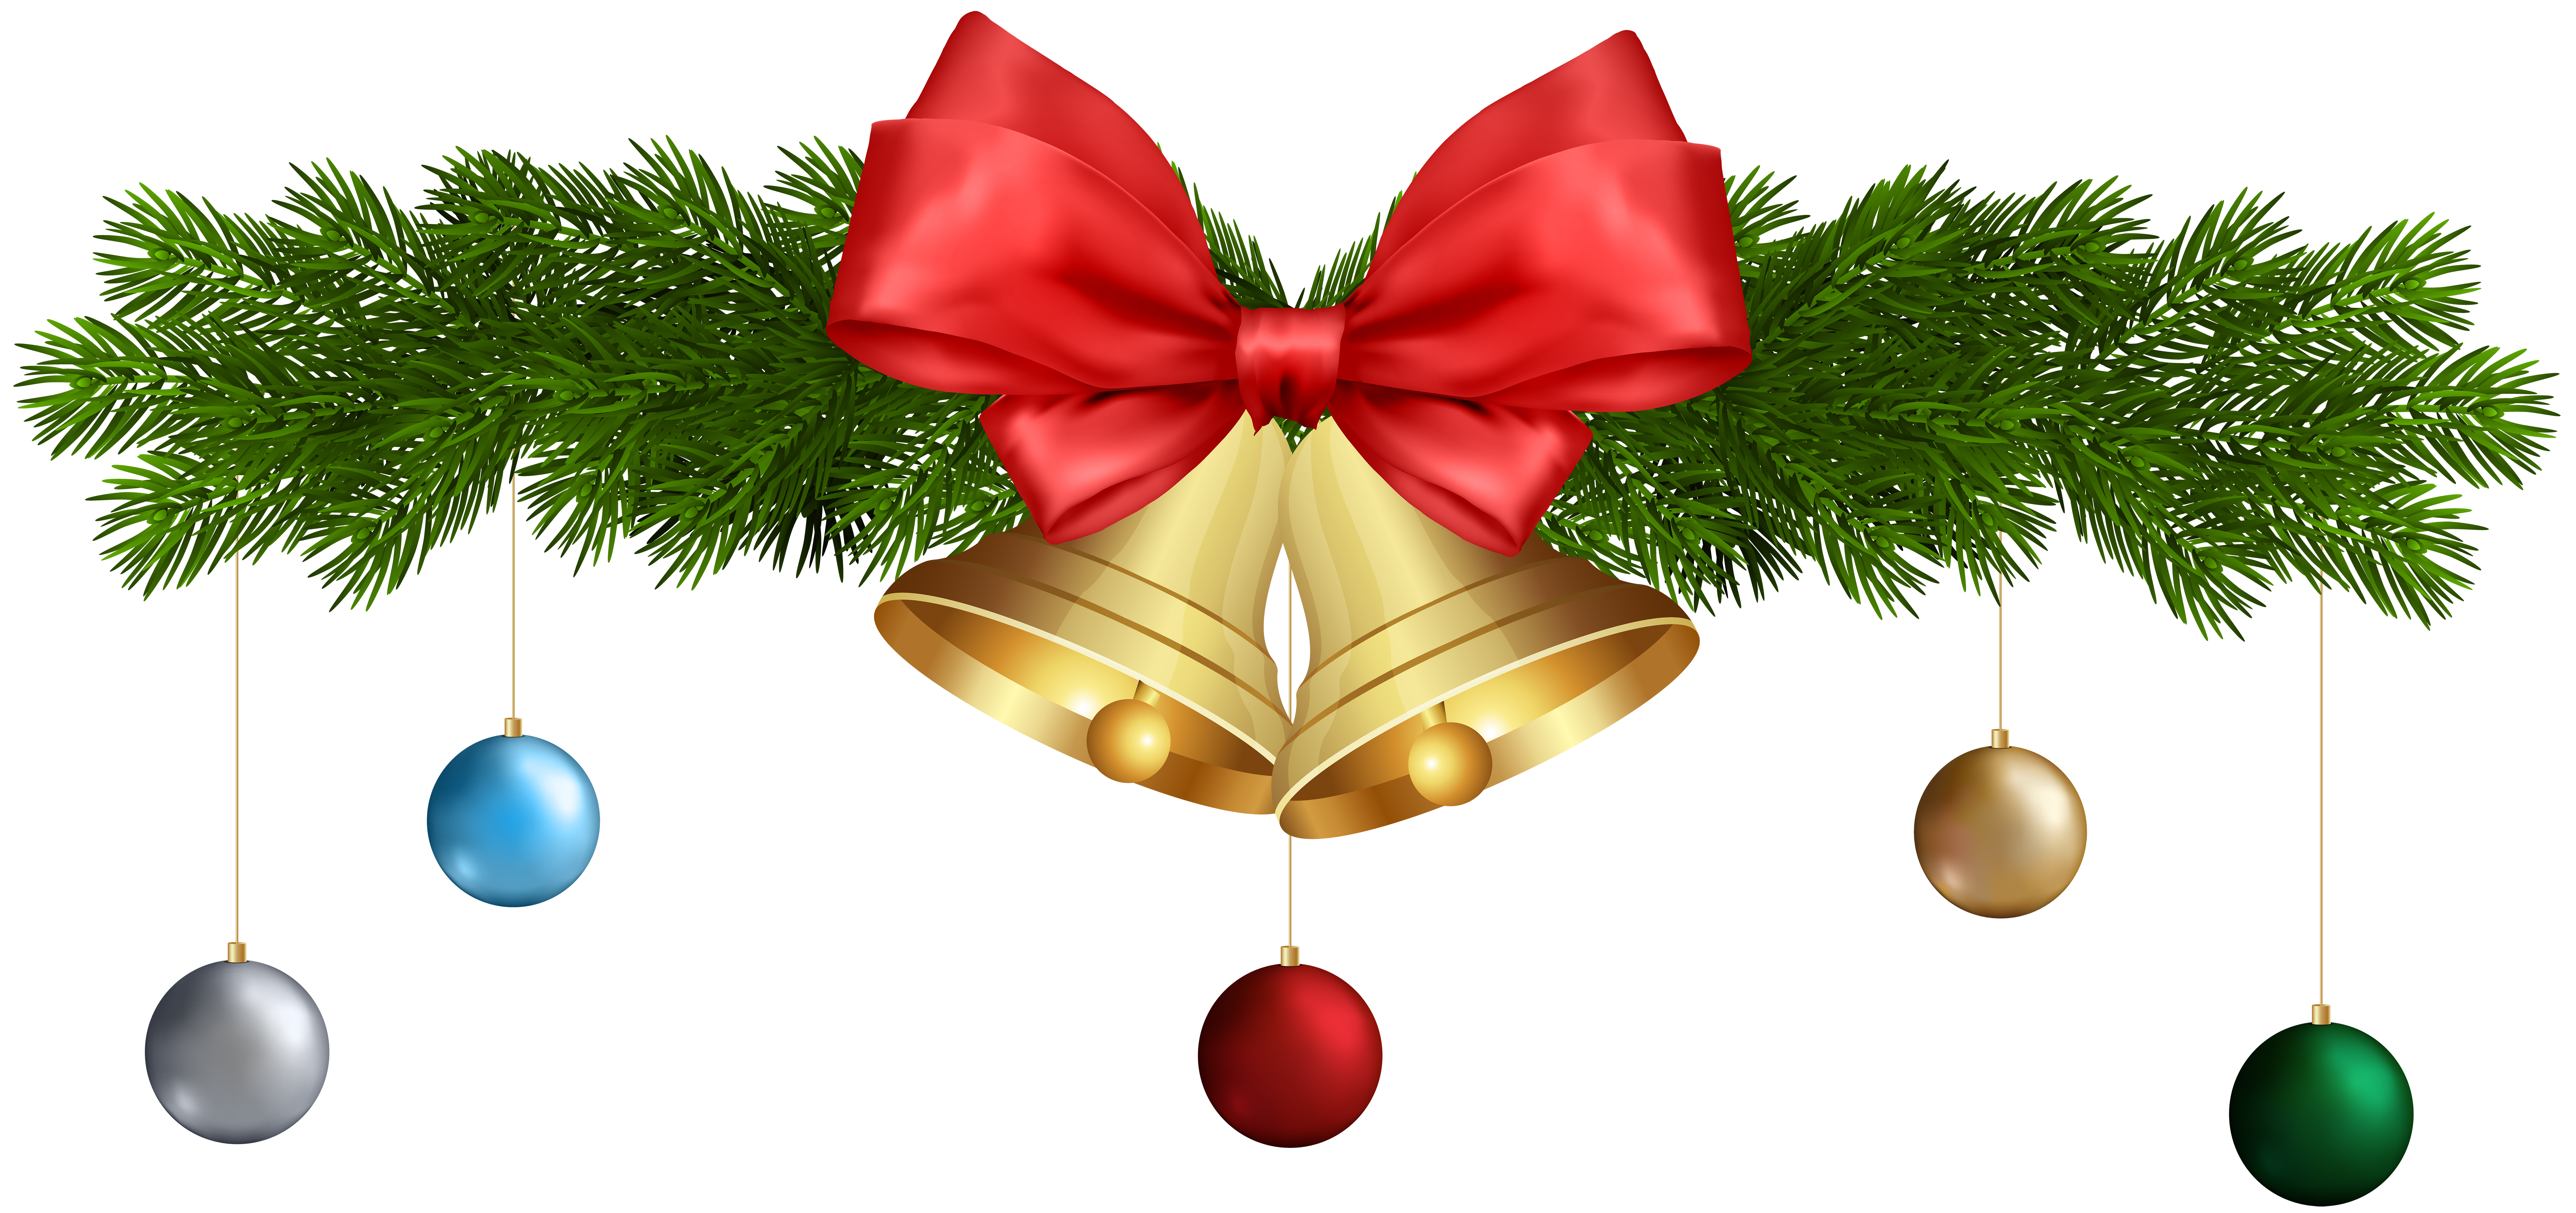 Ornament clipart bell. Christmas bells and ornaments